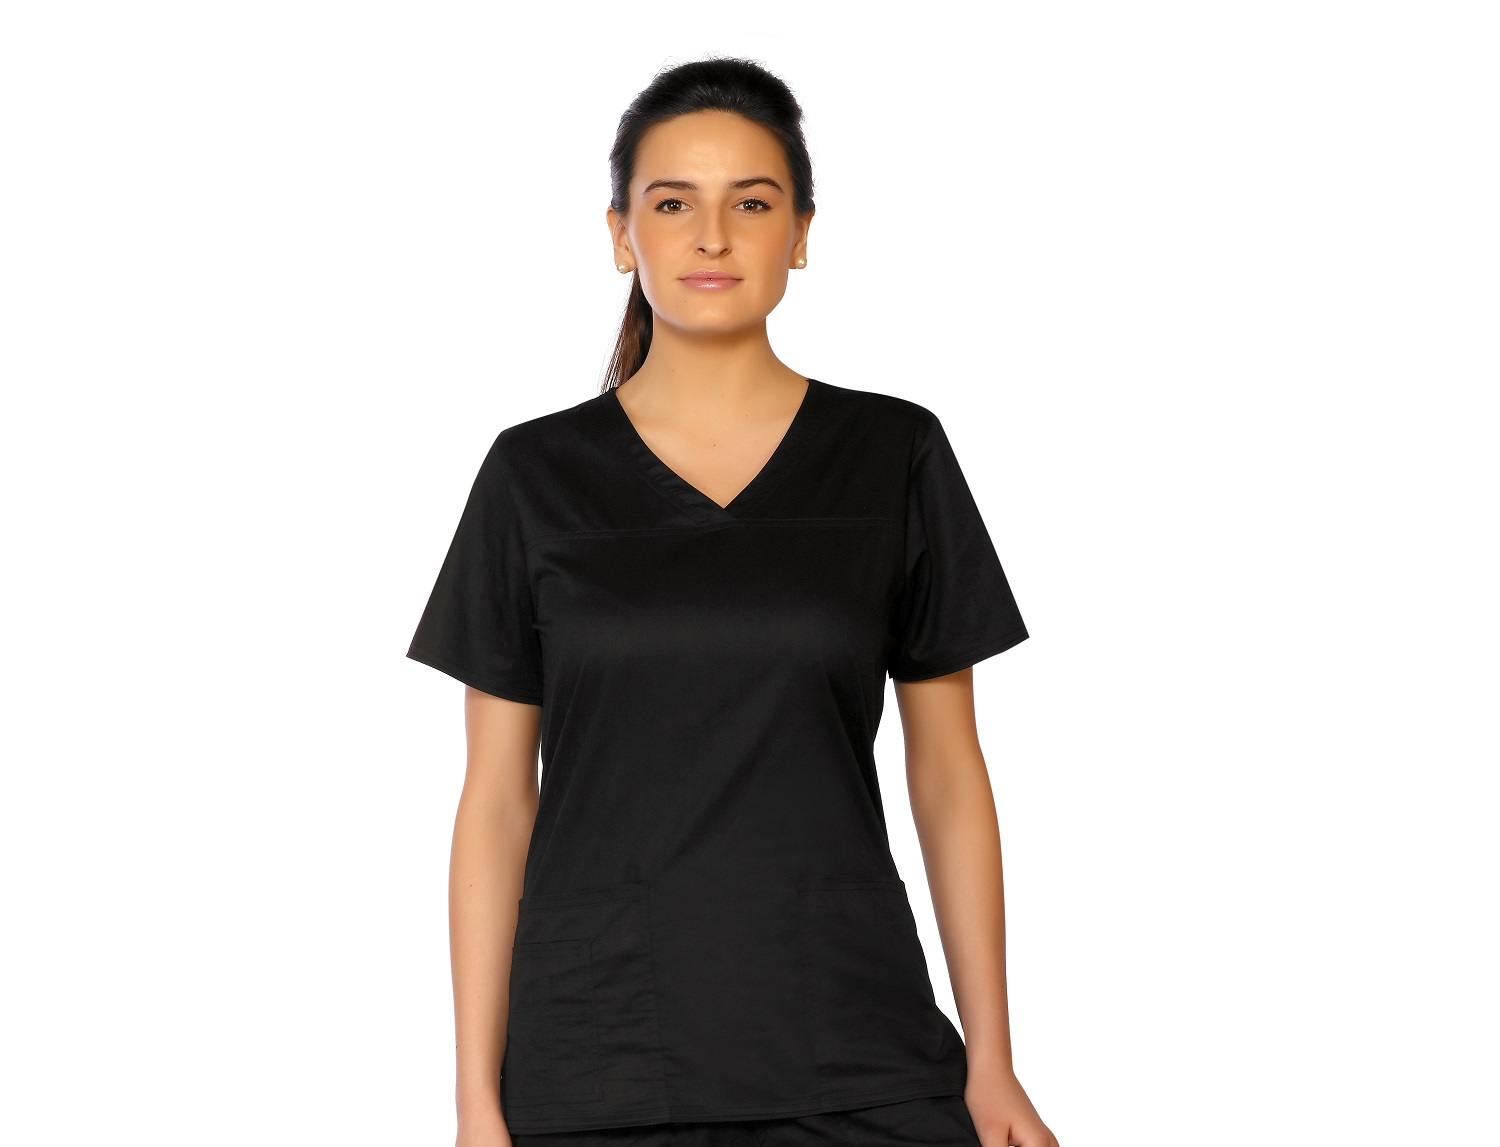 Womens Stretch V-Neck Top, LifeThreads Contego Collection